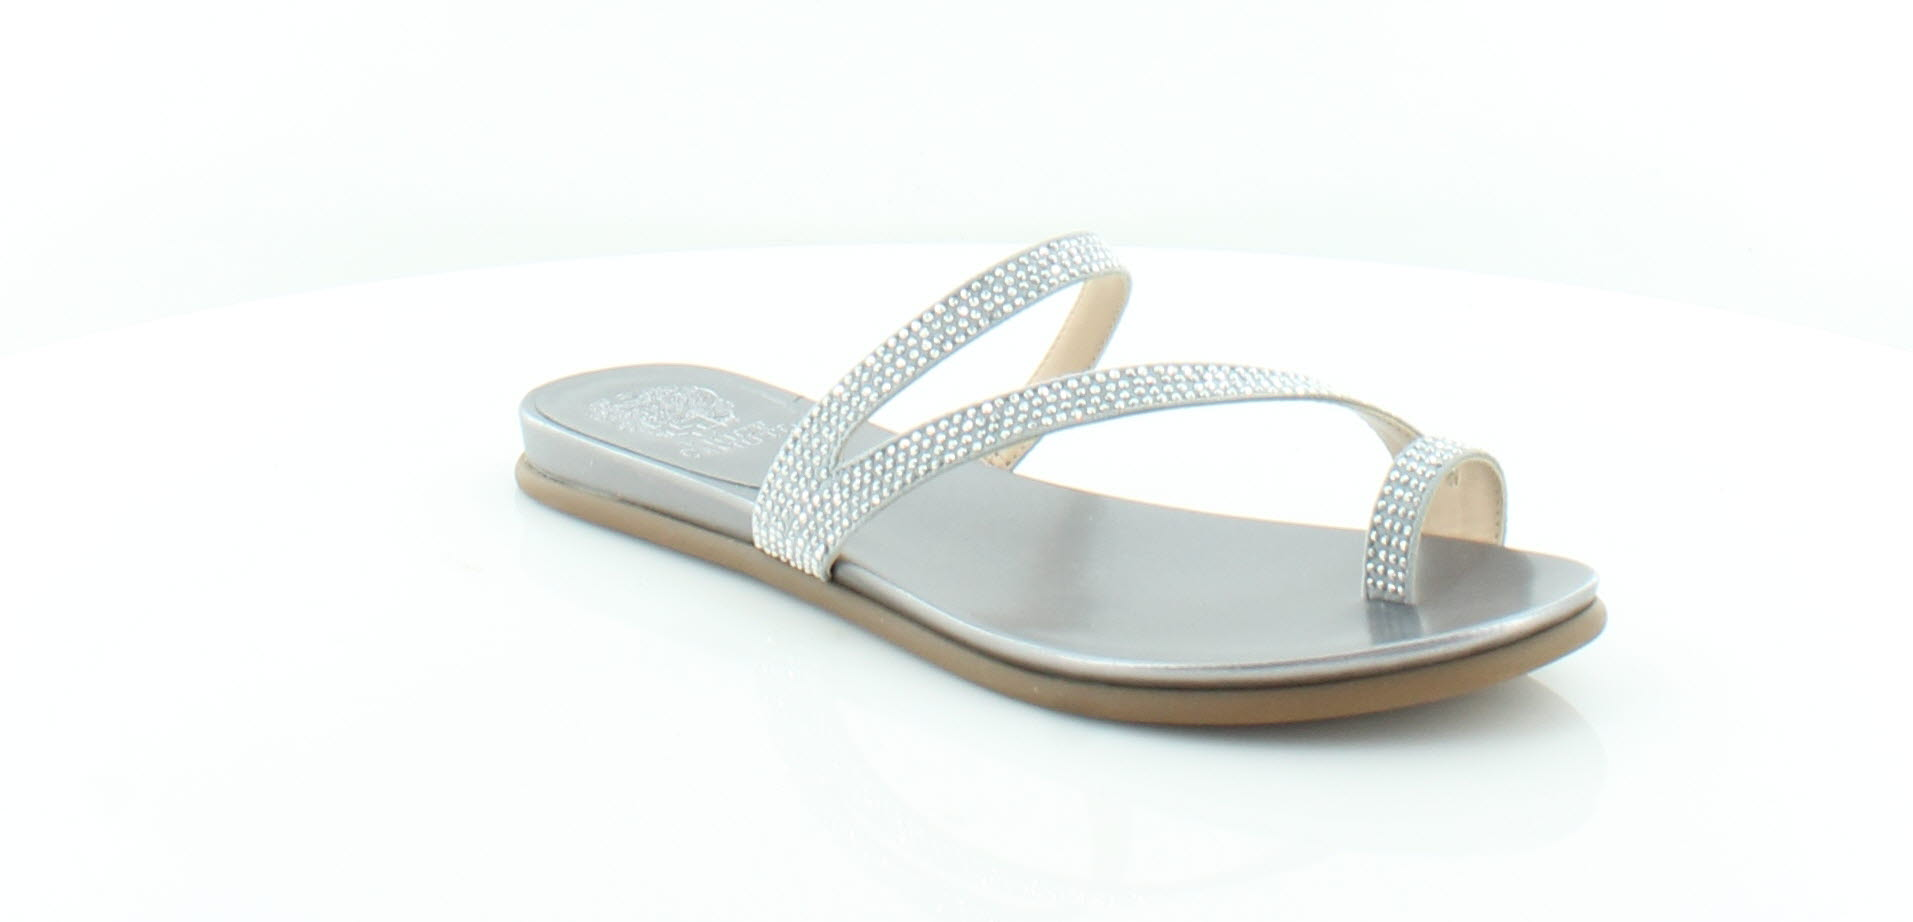 057c0ebe9c2 Details about Vince Camuto New Lidie Silver Womens Shoes Size 10 M Sandals  MSRP $119